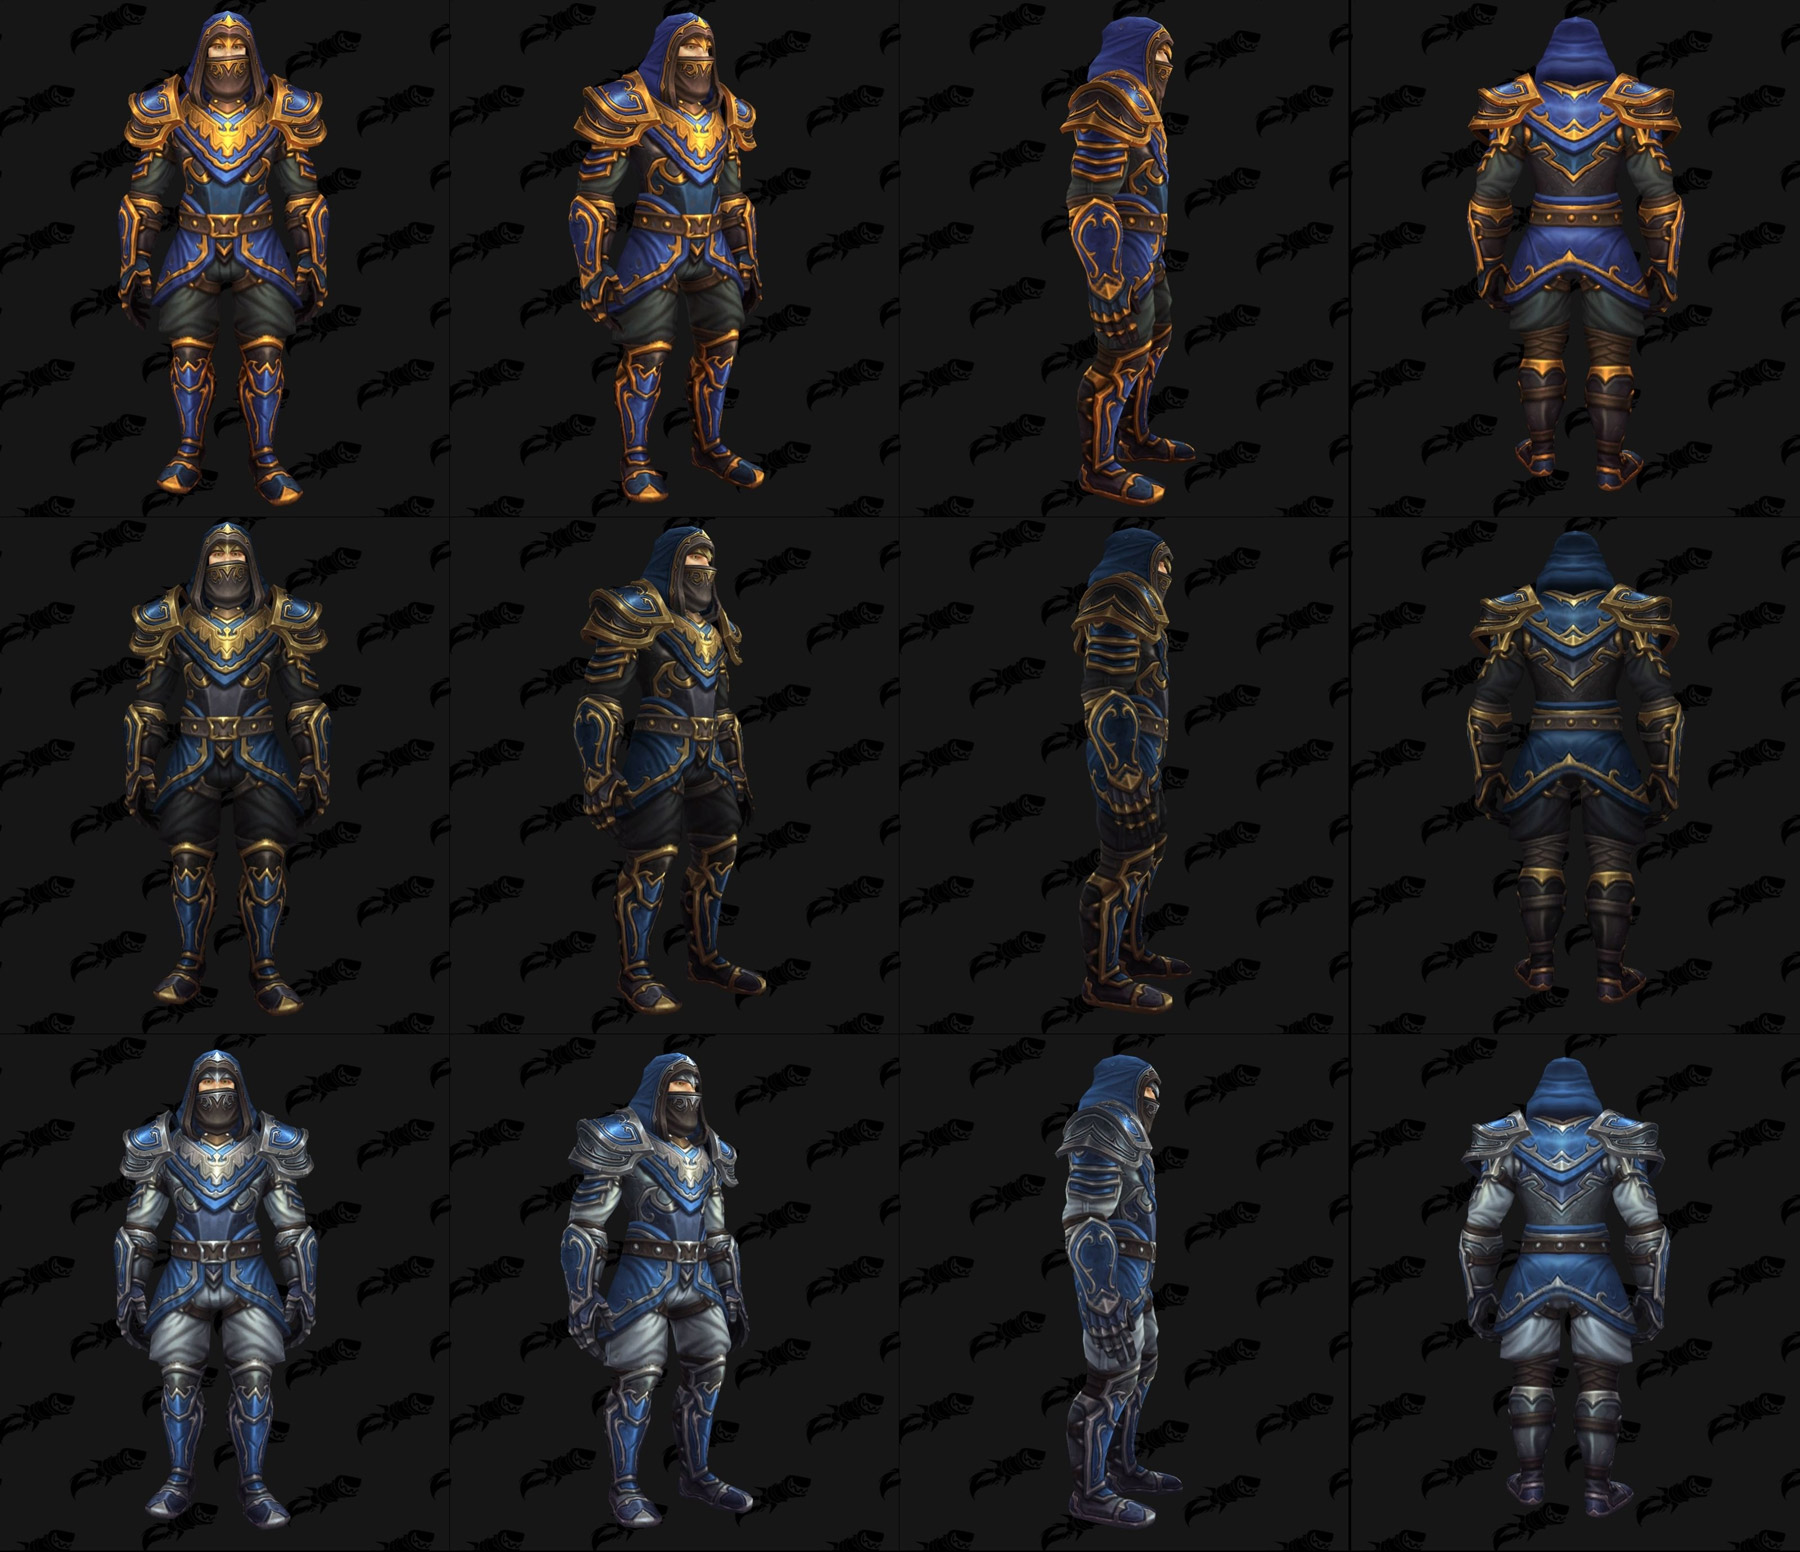 Ensembles Front de guerre (Alliance) en cuir - Tier 1 - Battle for Azeroth